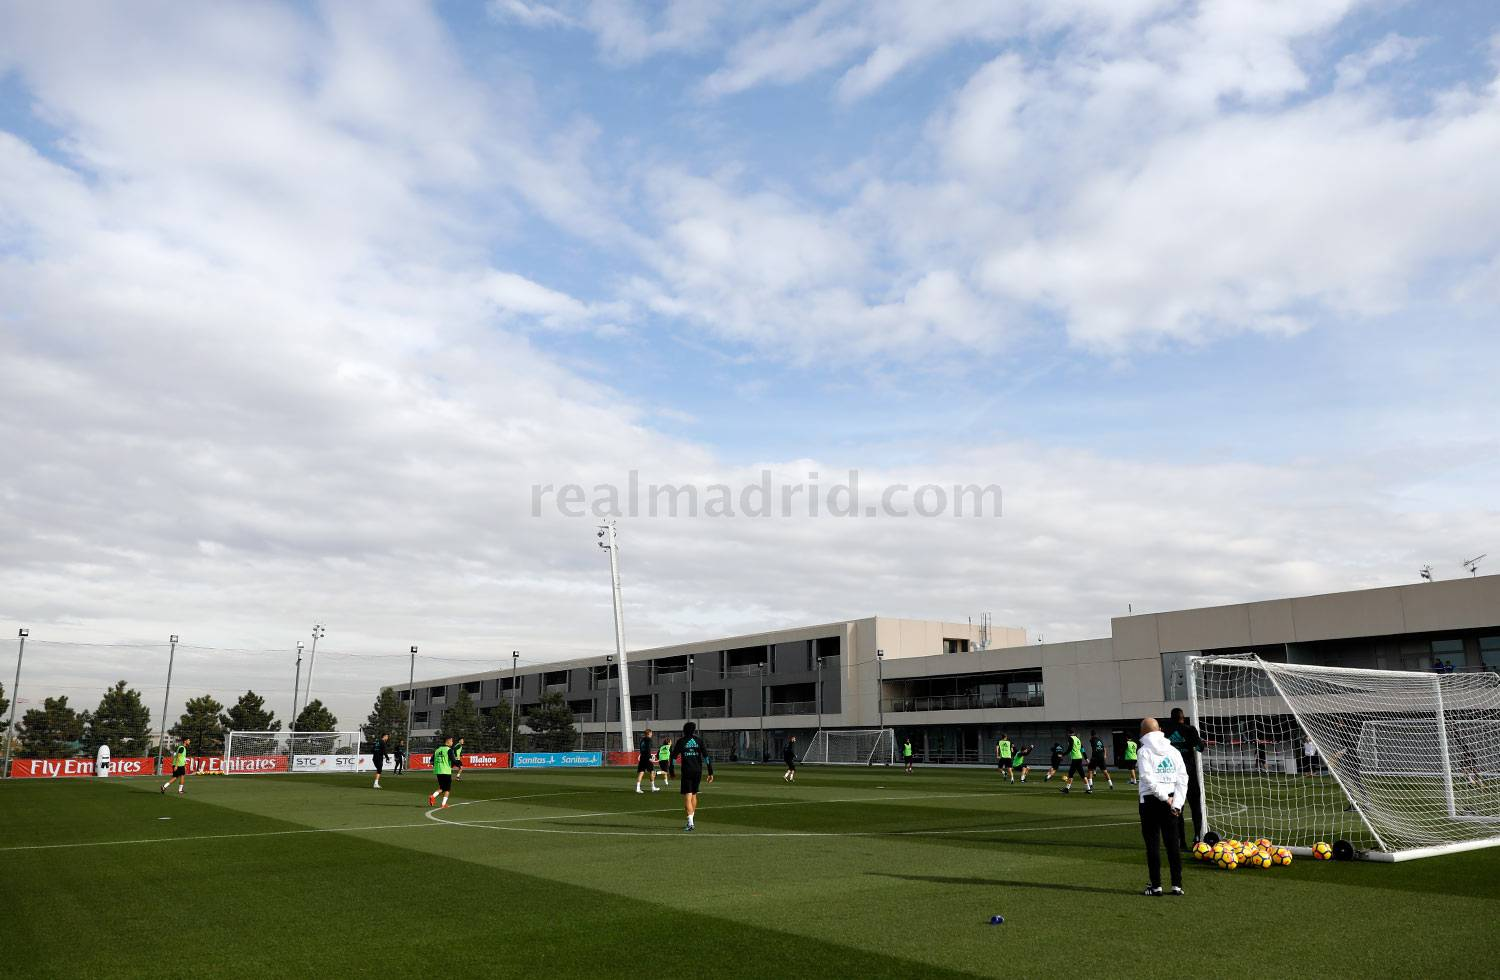 Real Madrid - Entrenamiento del Real Madrid - 23-11-2017